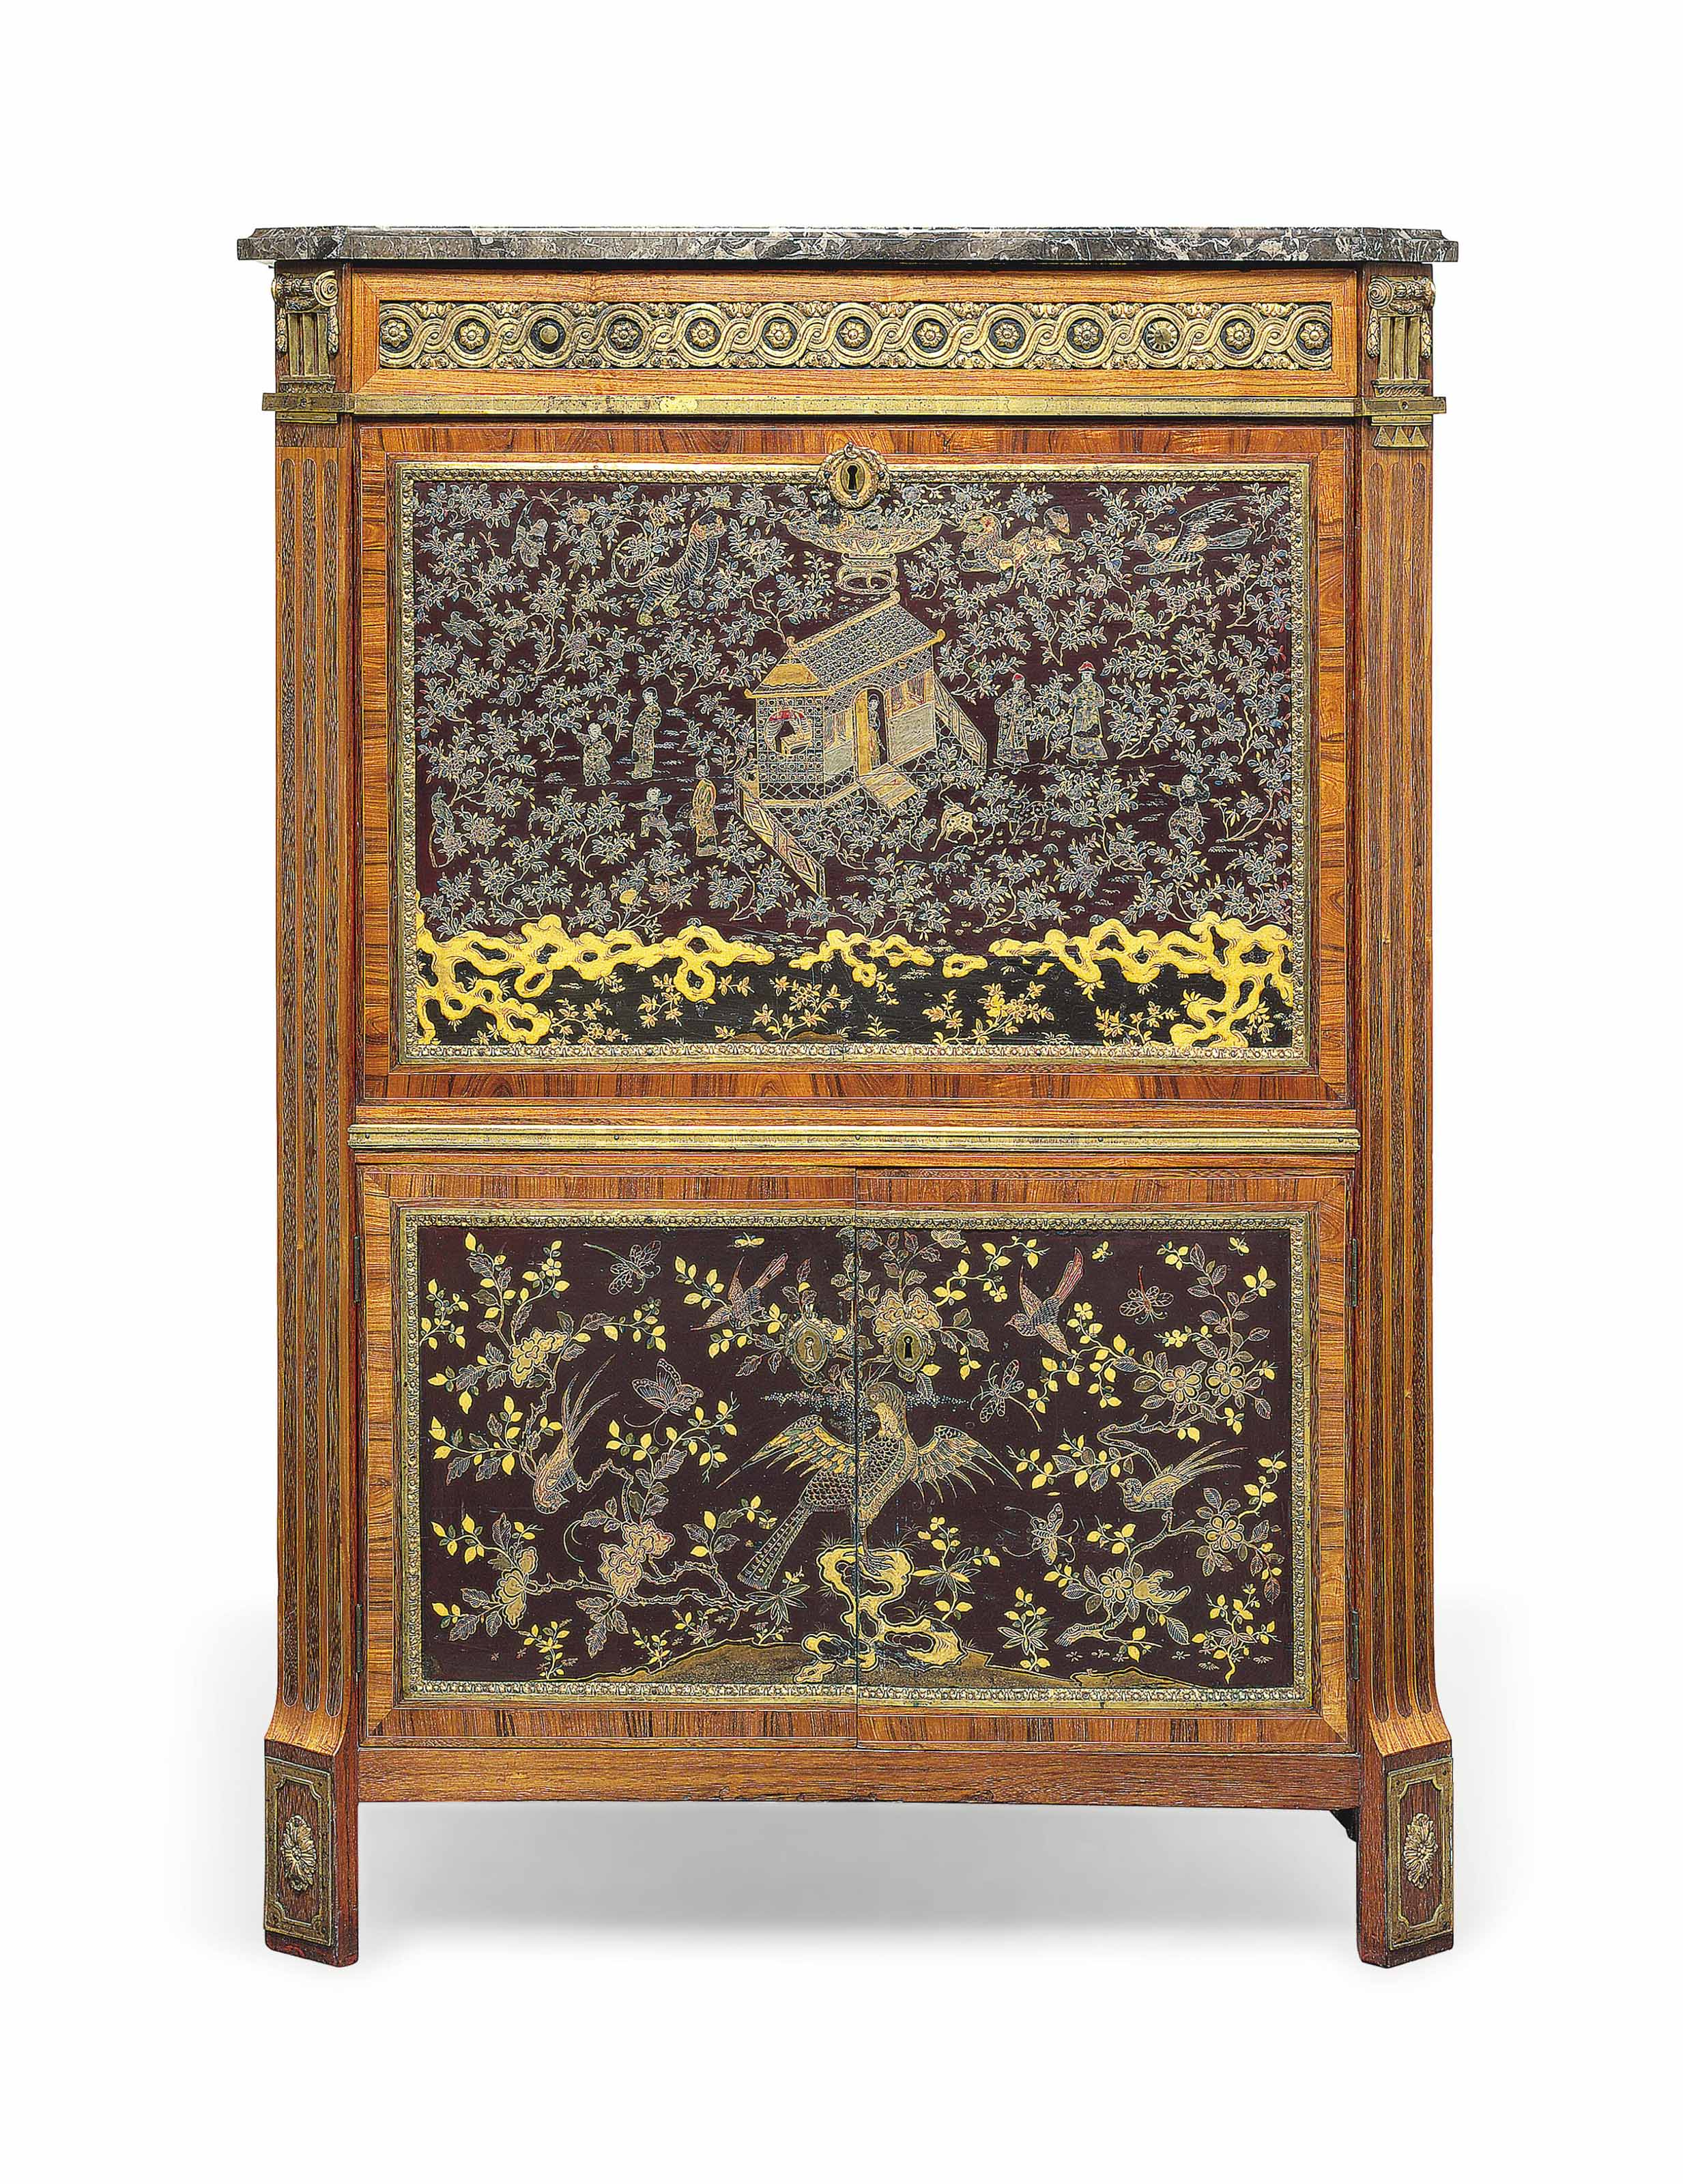 A LOUIS XVI ORMOLU-MOUNTED KINGWOOD, TULIPWOOD, AMARANTH, MOTHER-OF-PEARL INLAID CHINESE LACQUER AND JAPANNED SECRETAIRE A ABATTANT